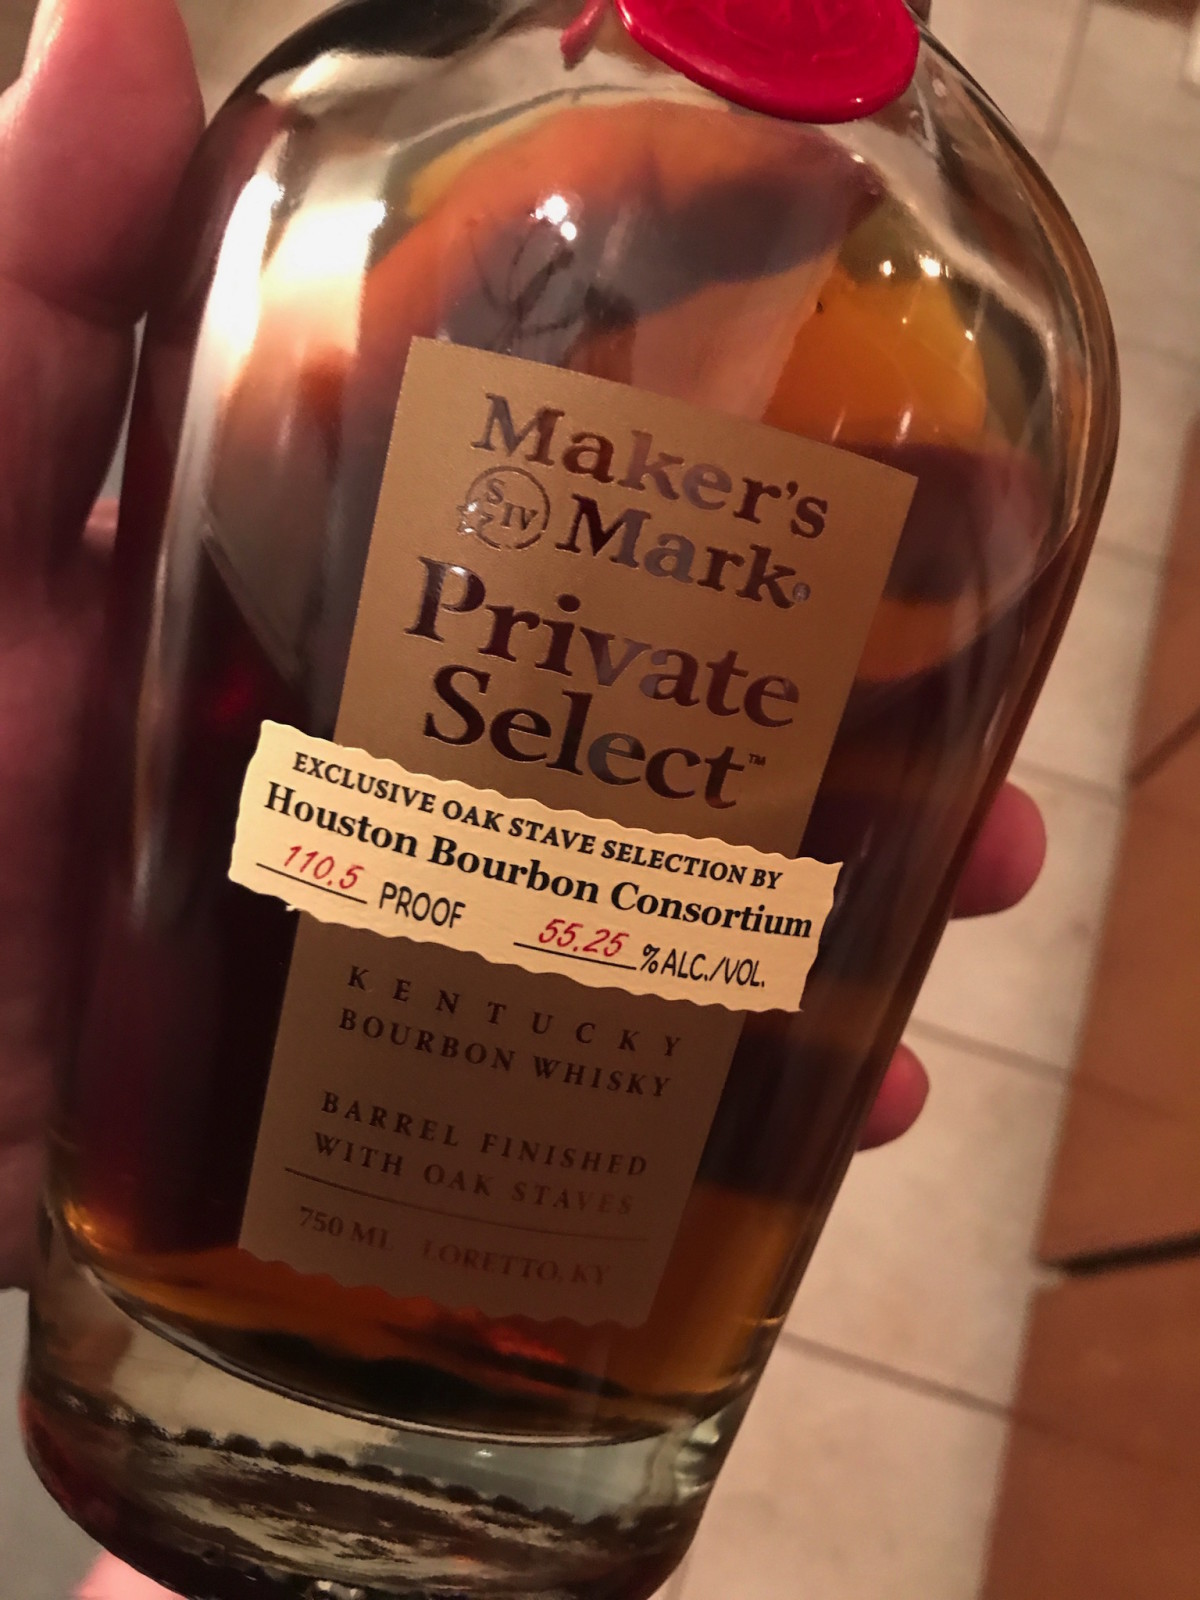 Houston Bourbon Consortium Maker's Mark bottle